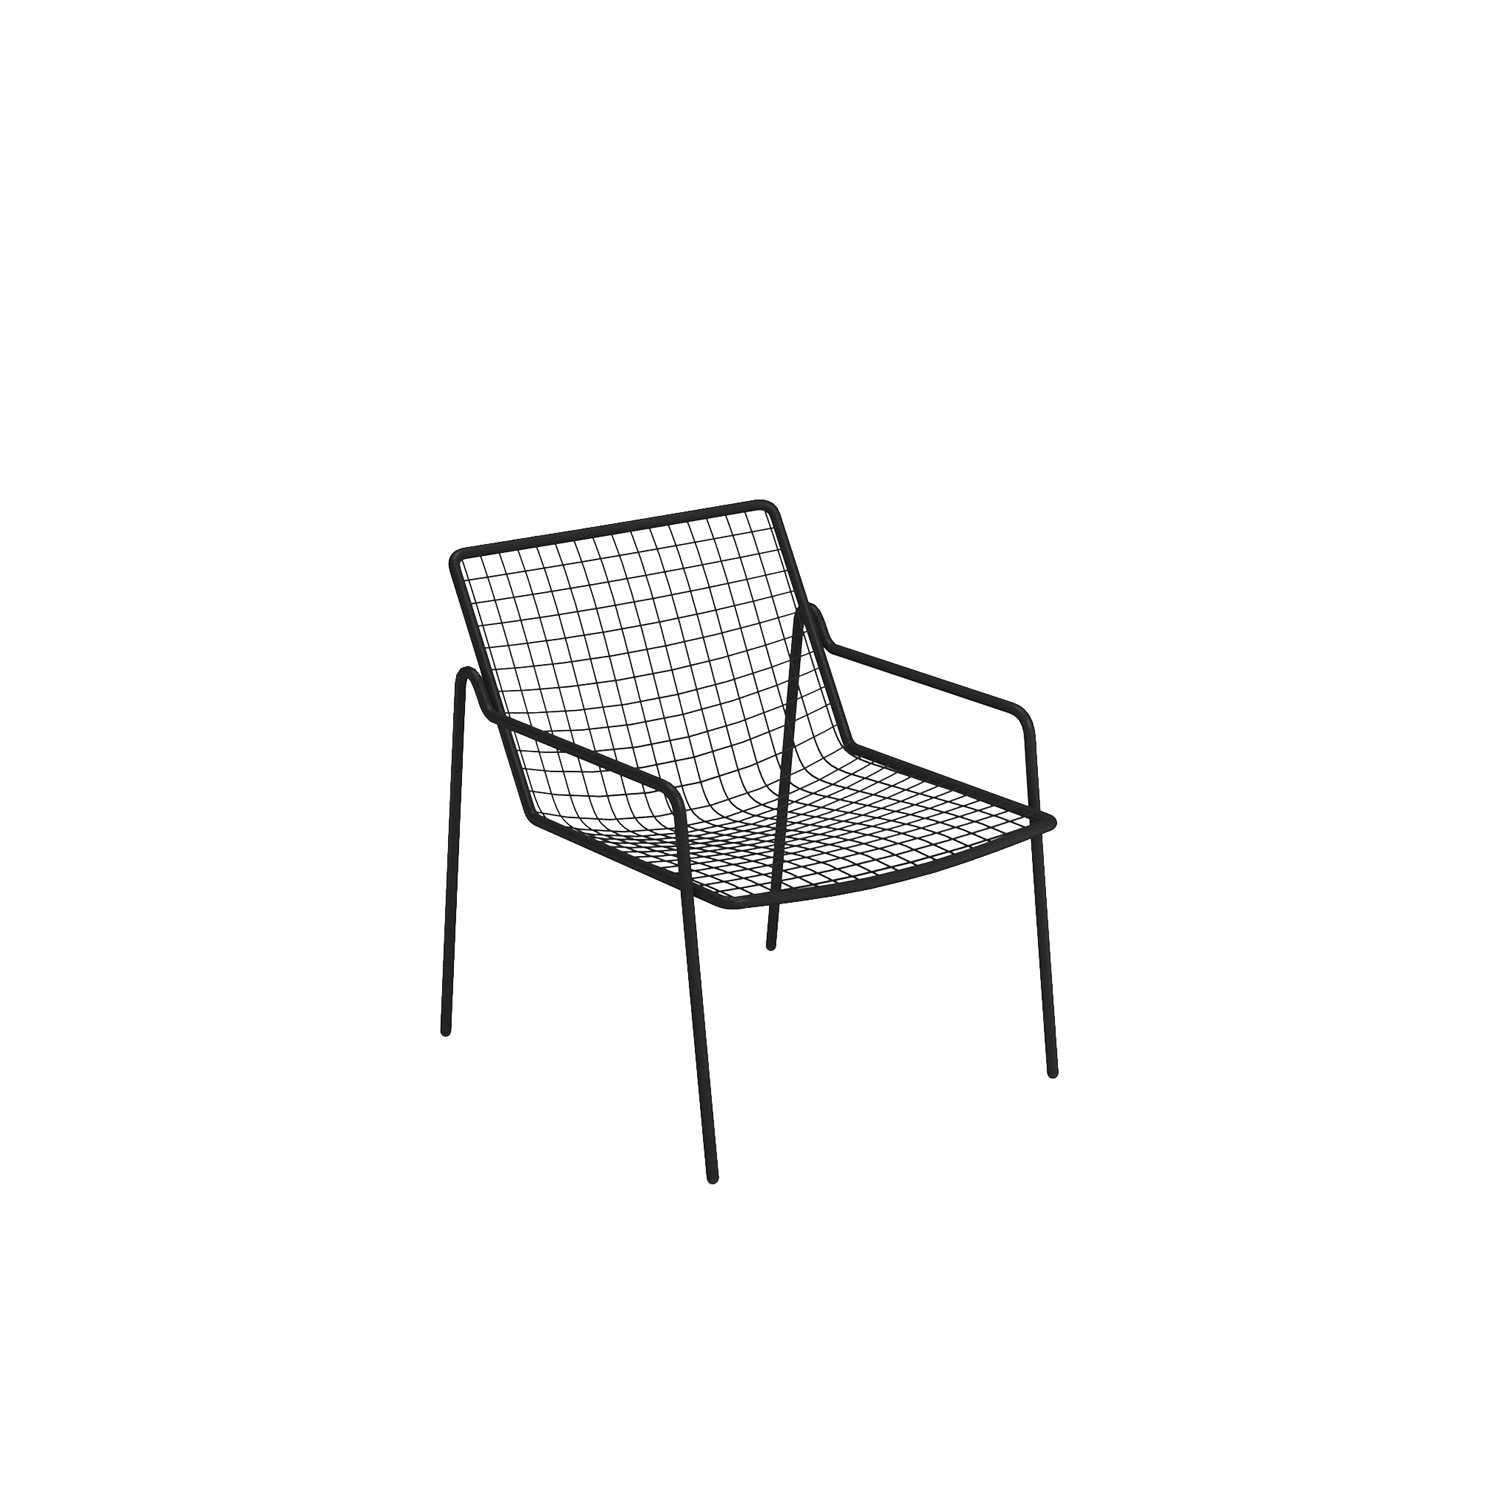 Rio R50 Lounge Chair - Set of 2 - RIO R50 is an expertly crafted re-edition of the historic model Rio of the 70s. RIO R50 has a frame in ASFORM steel tube, high-quality steel with high mechanical performance and high resistance to weight. 